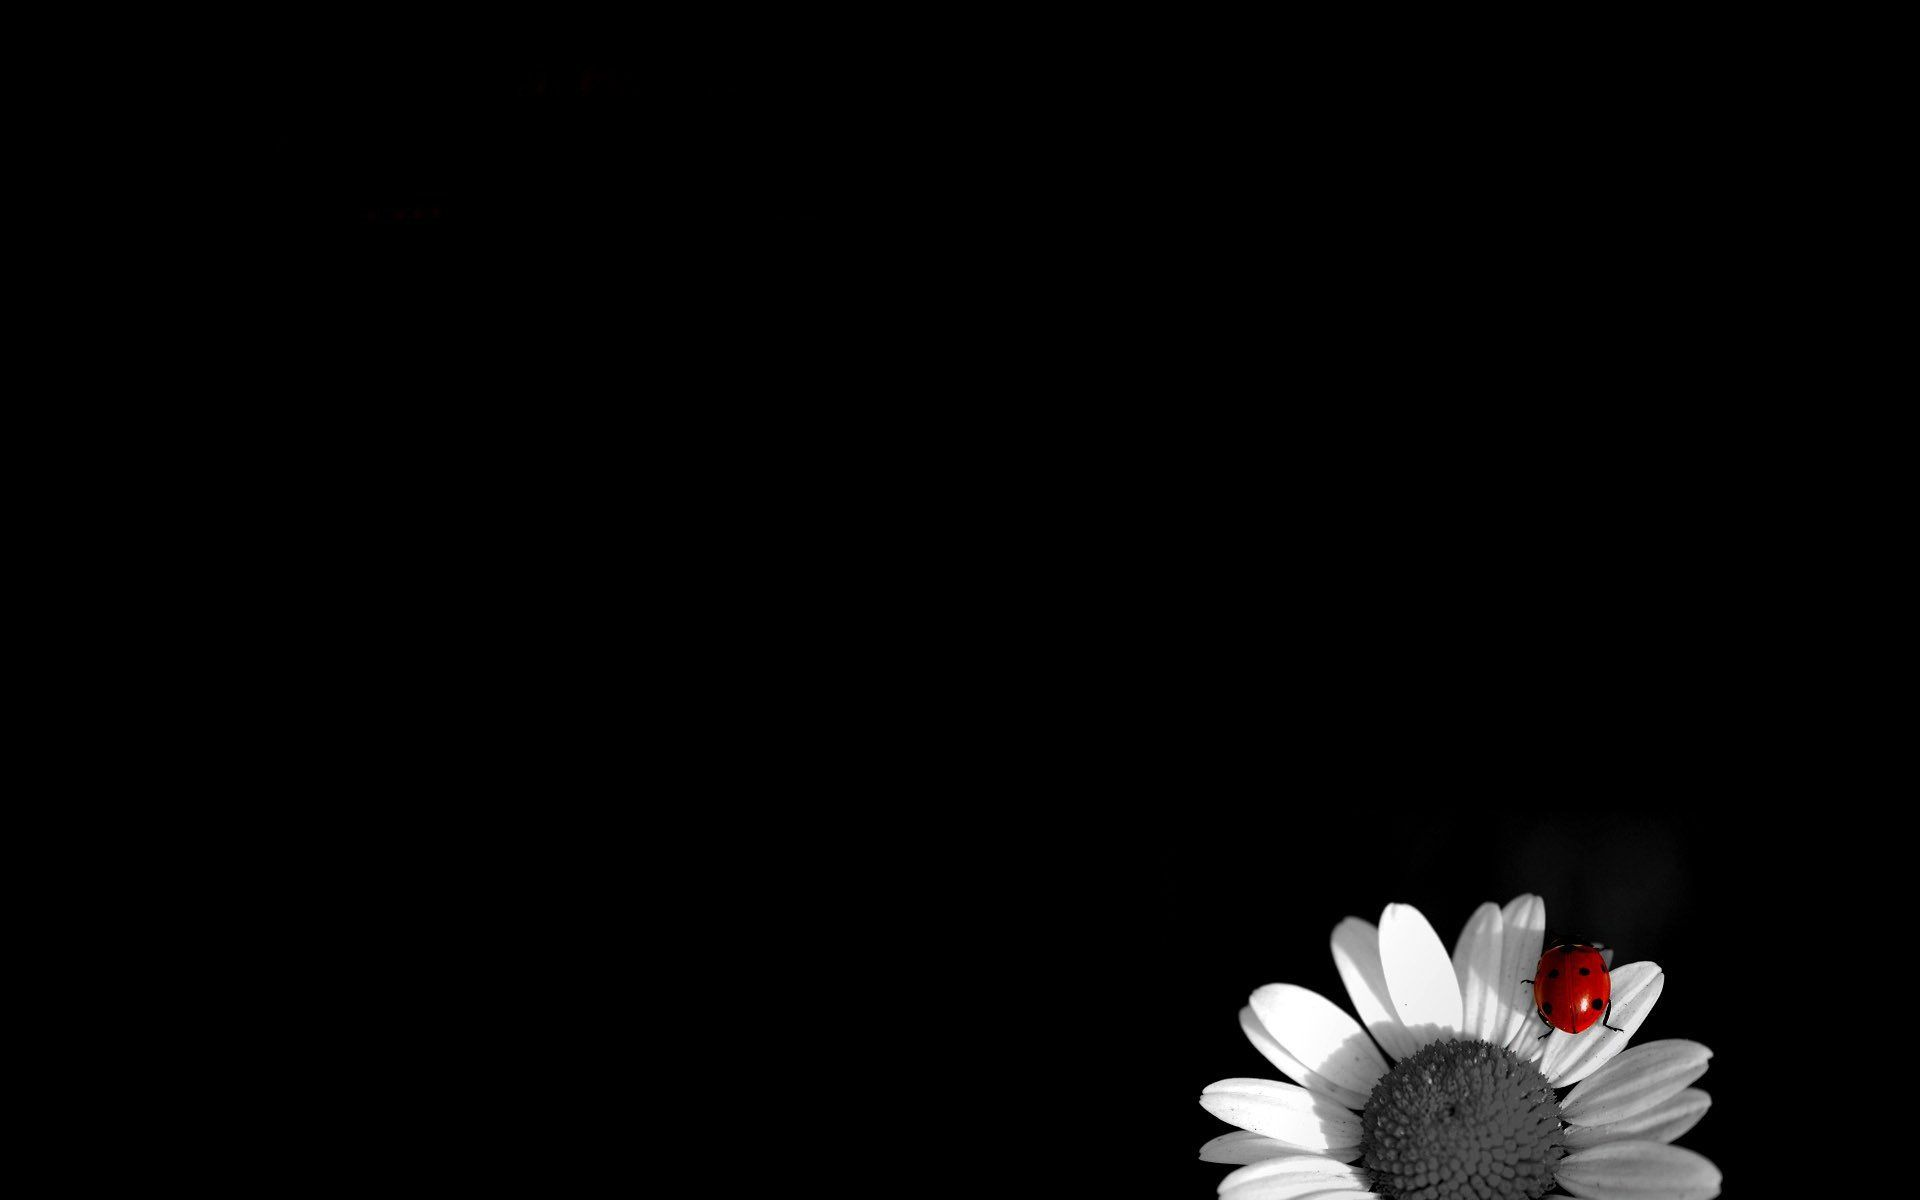 Wallpapers Fondos Negros Hd Para Tu Pc Black And White Background Black And White Flowers White Flower Wallpaper